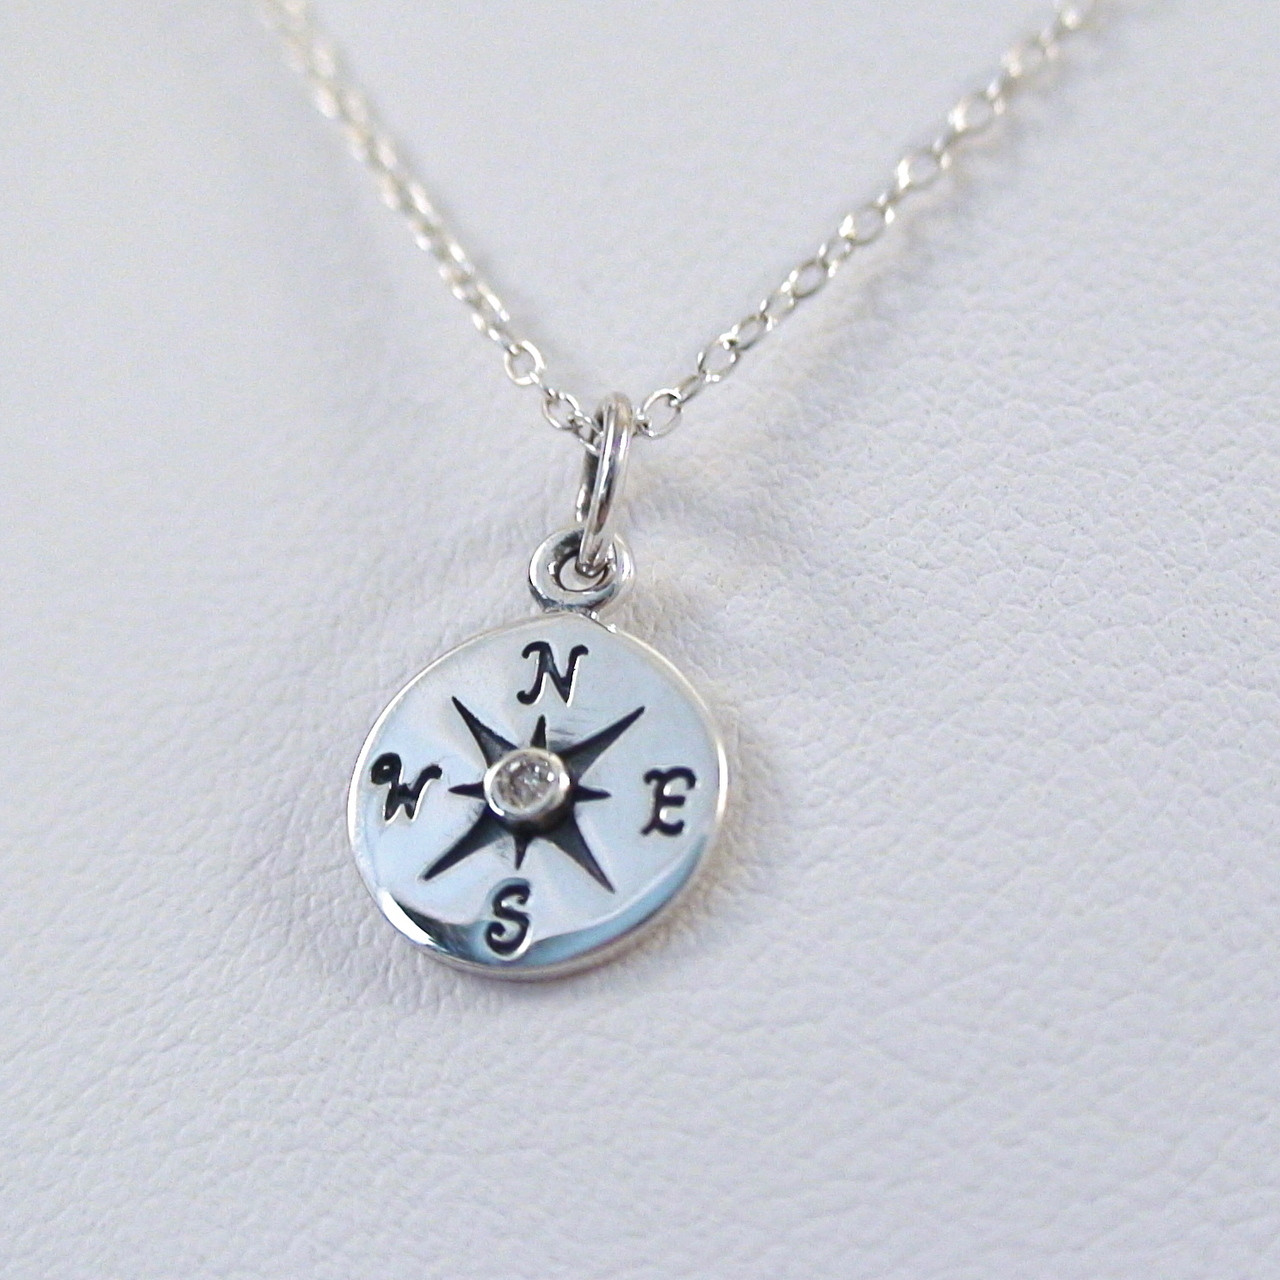 Sterling silver compass necklace with 1pt genuine diamond sterling silver compass charm necklace with genuine 1pt diamond aloadofball Choice Image